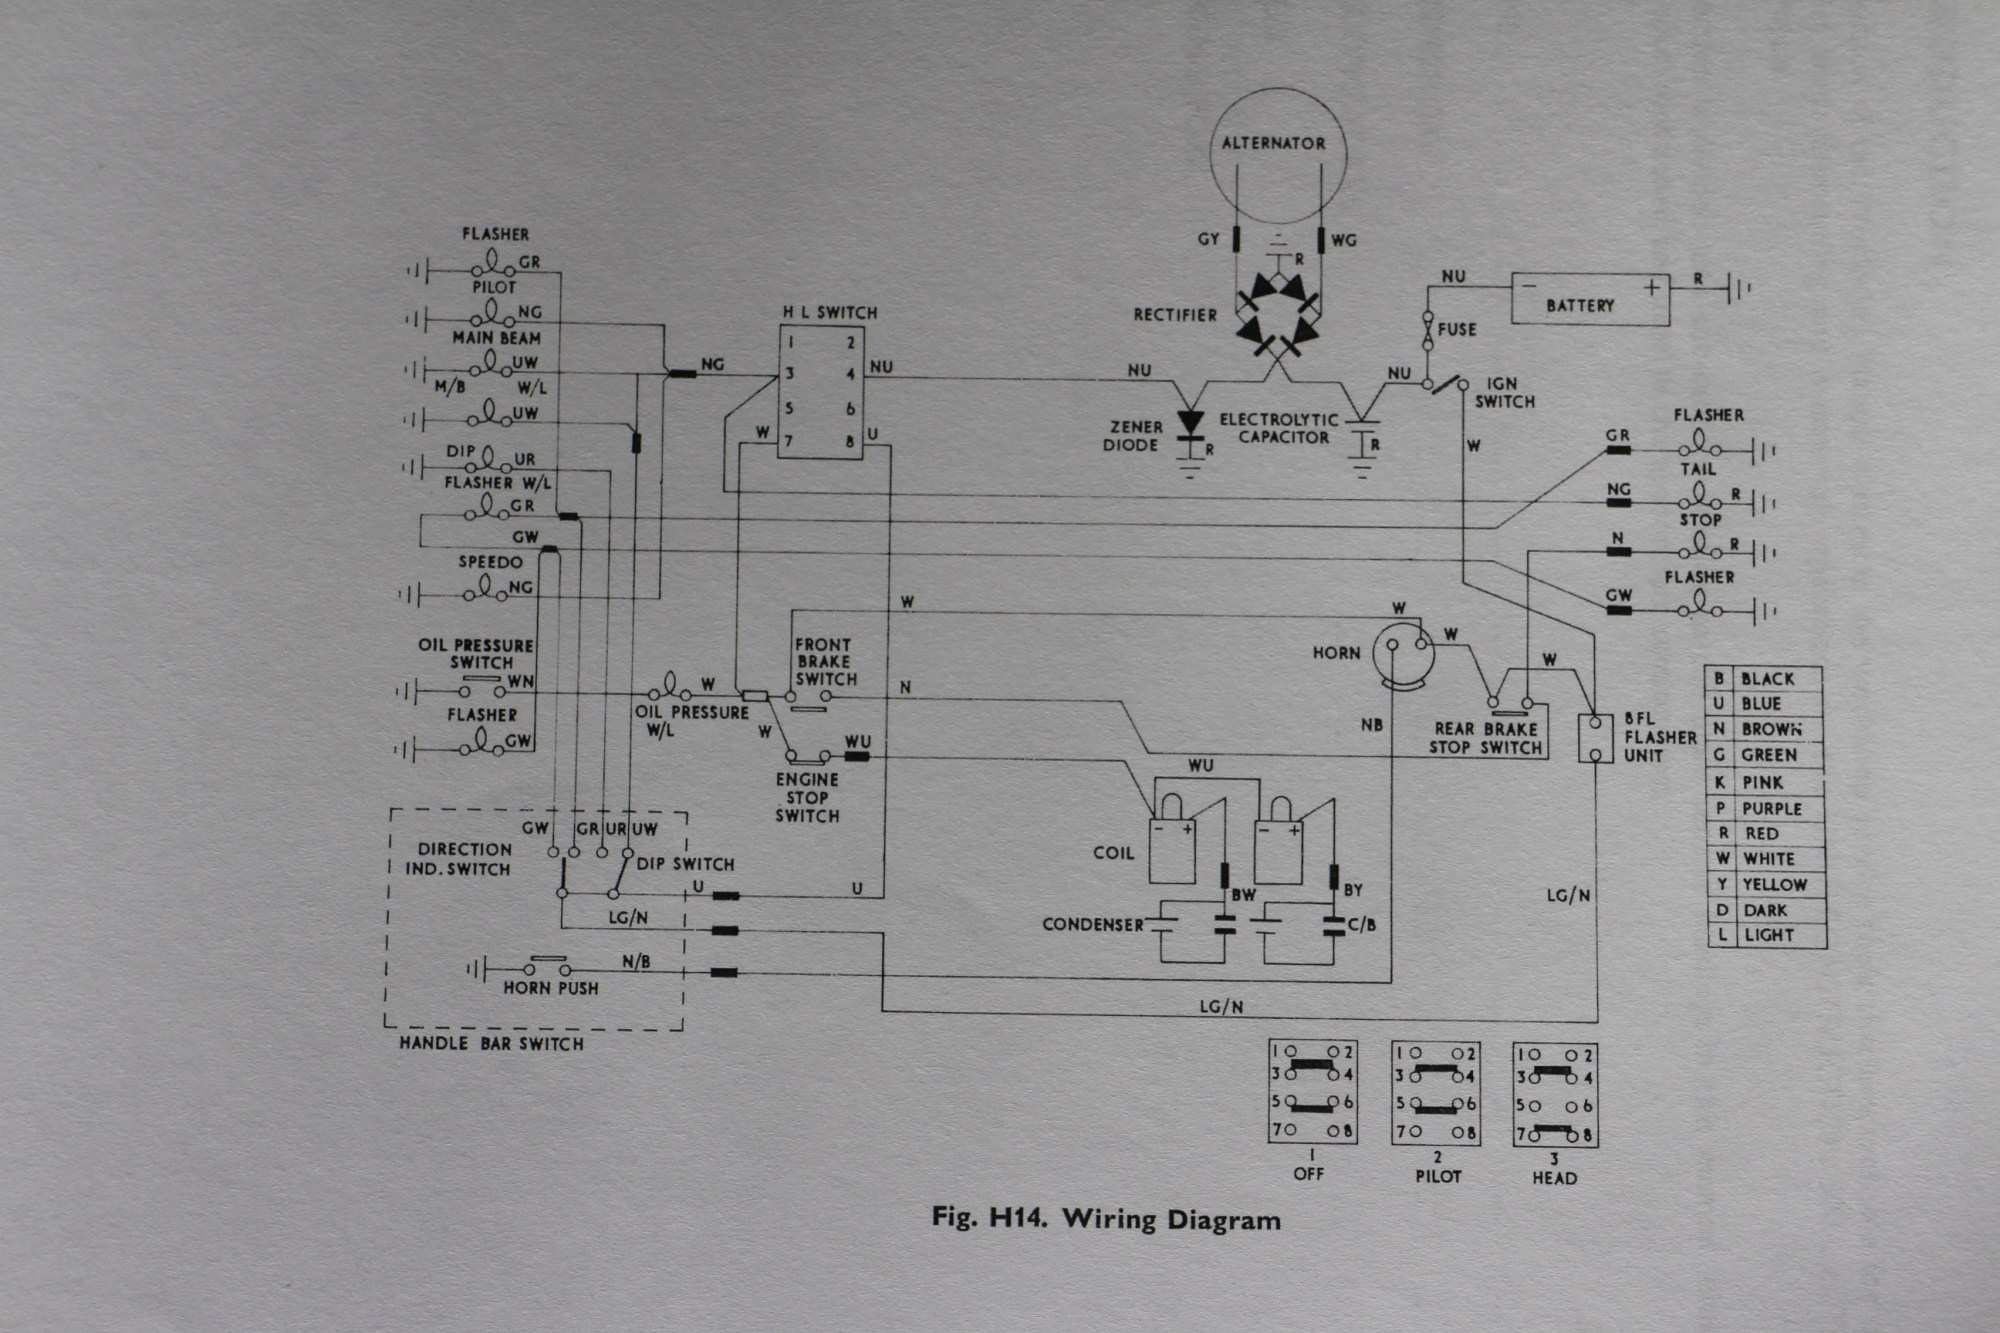 hight resolution of 1974 triumph wiring diagram wiring diagram local 1974 triumph tr6 wiring diagram 1974 triumph wiring diagram